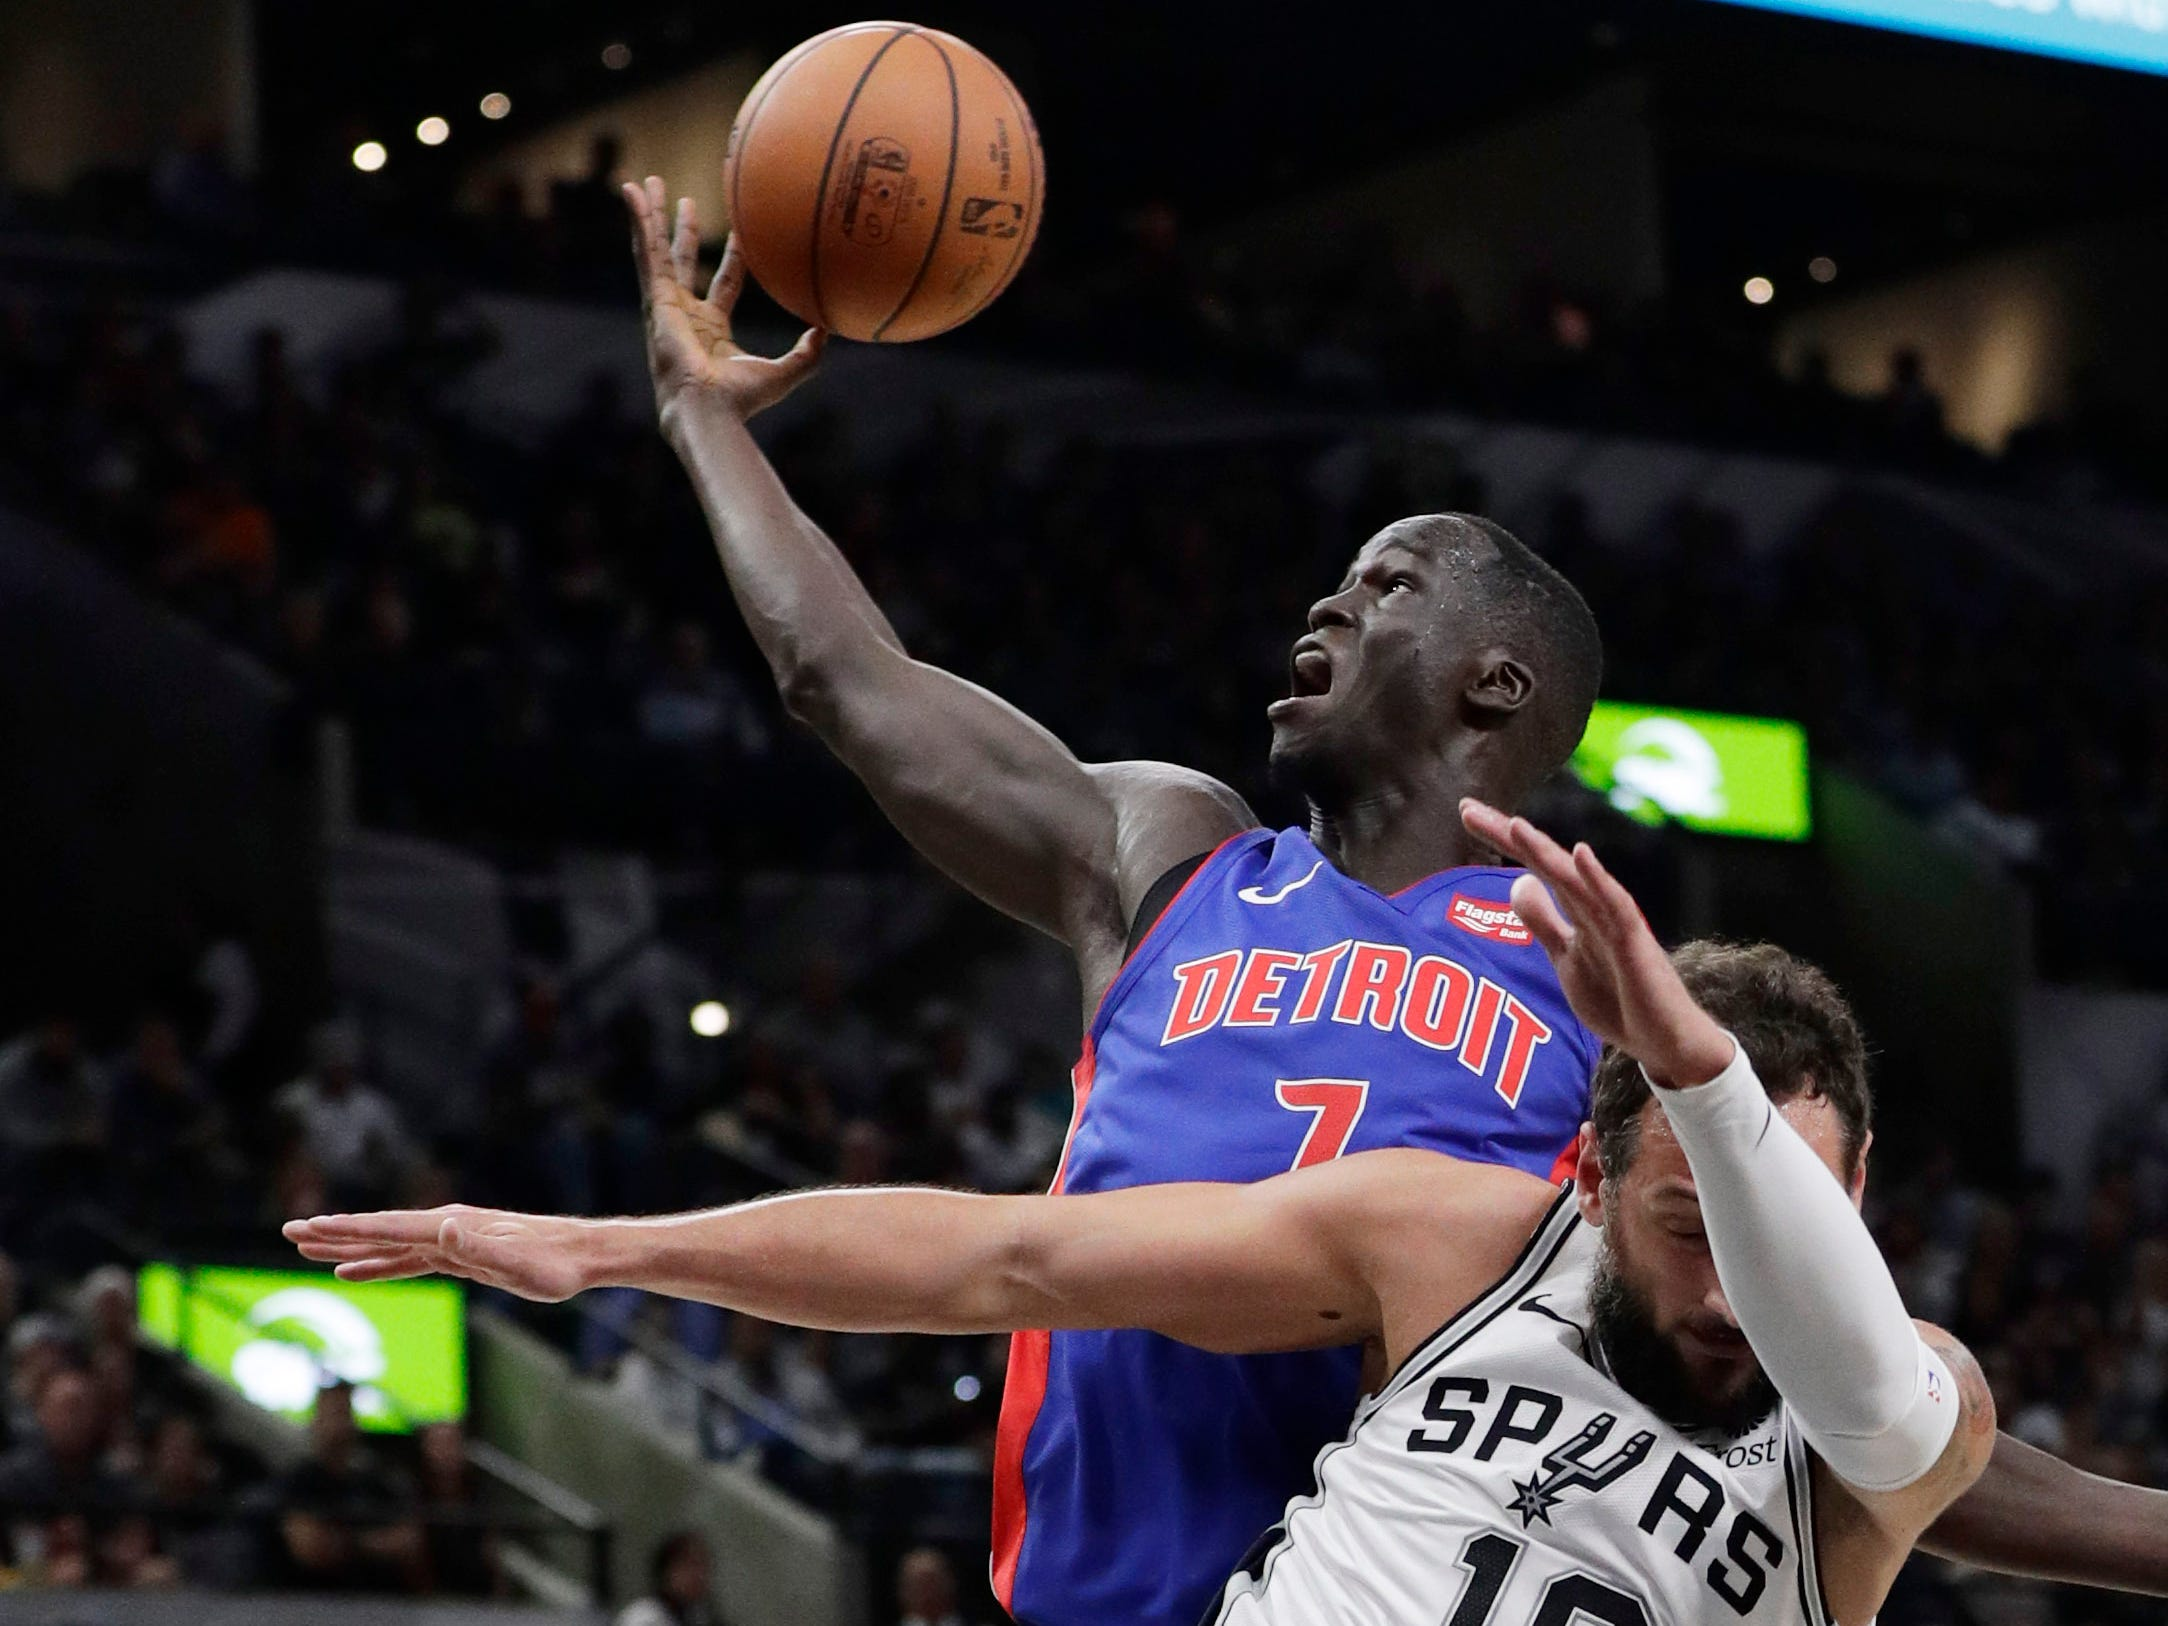 Detroit Pistons forward Thon Maker (7) reaches over San Antonio Spurs guard Marco Belinelli (18) for a rebound during the first half.